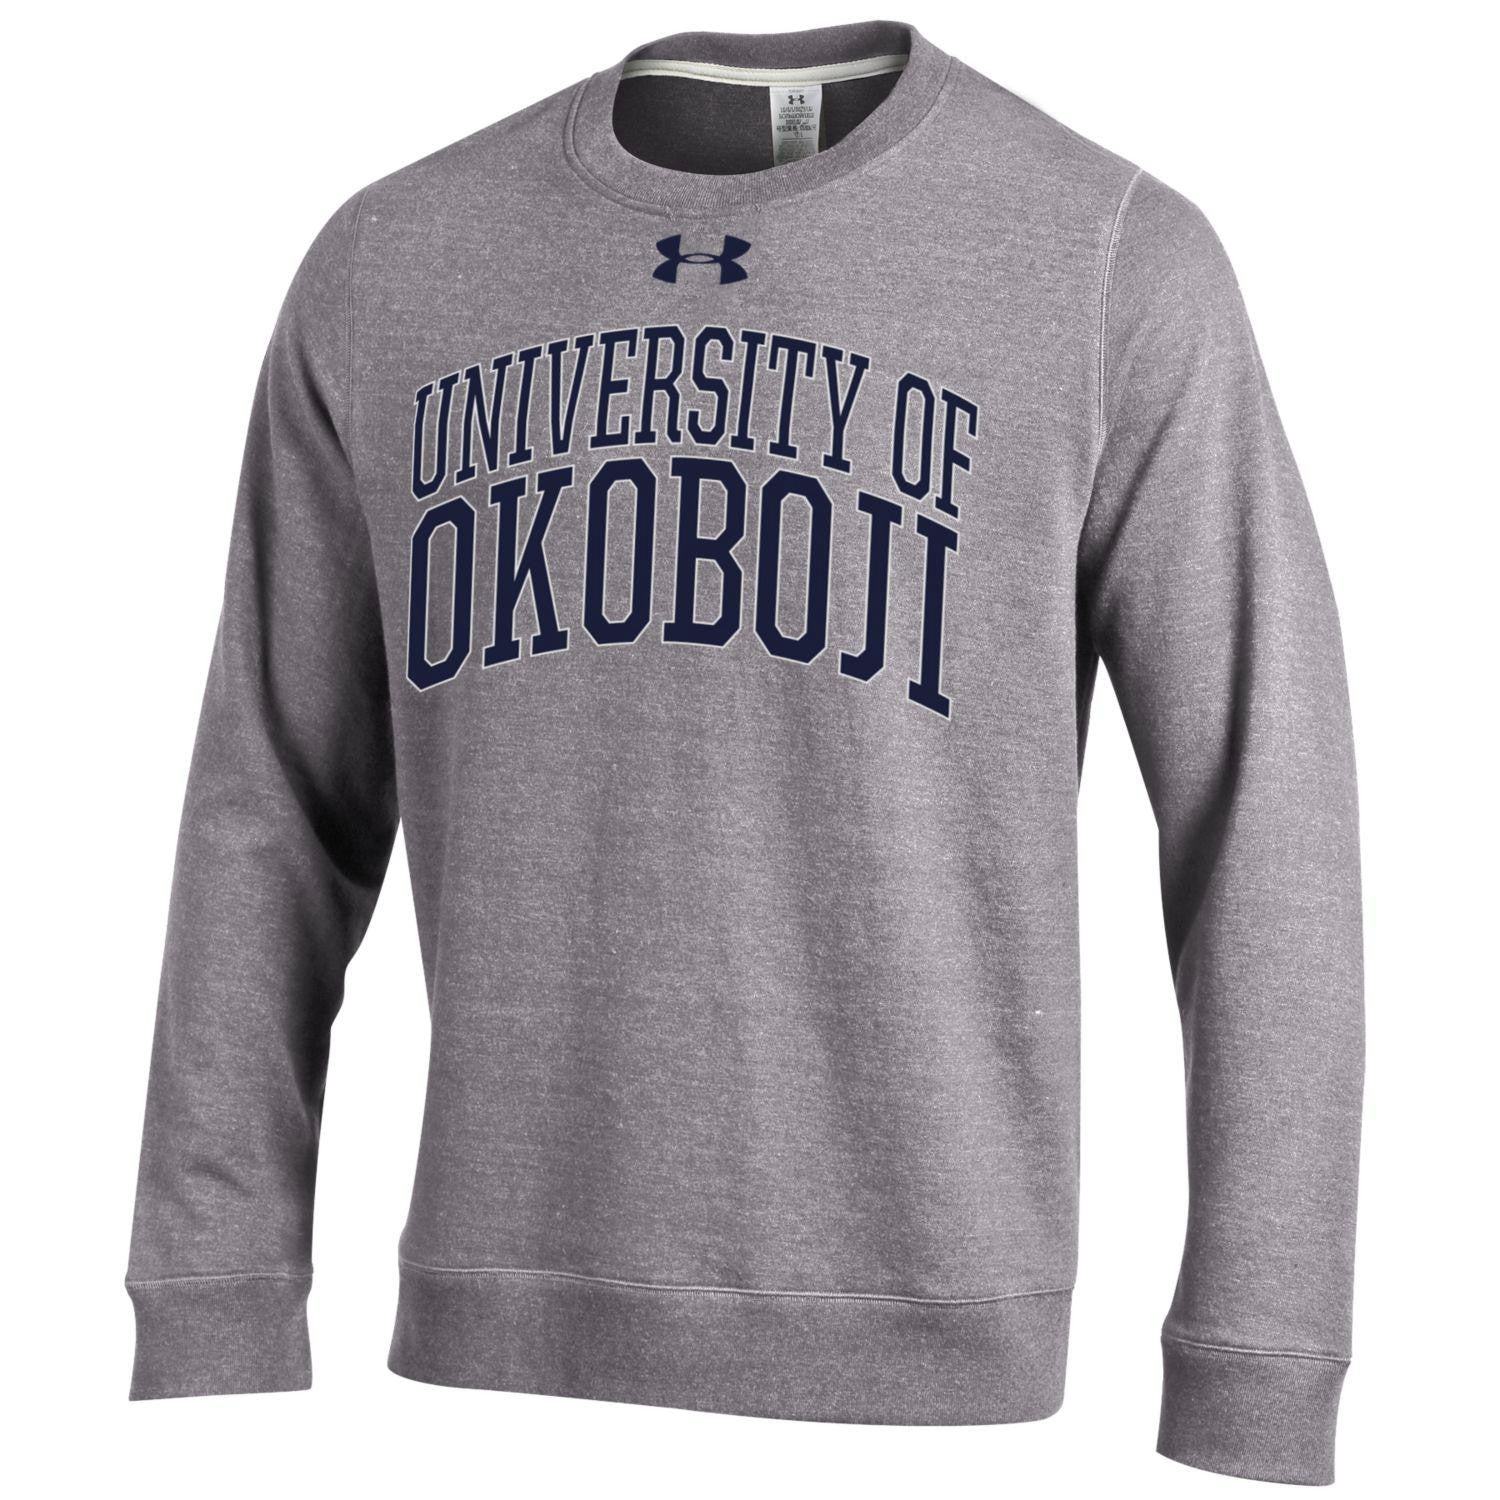 Under Armour University of Okoboji Athletic Prestige Crew